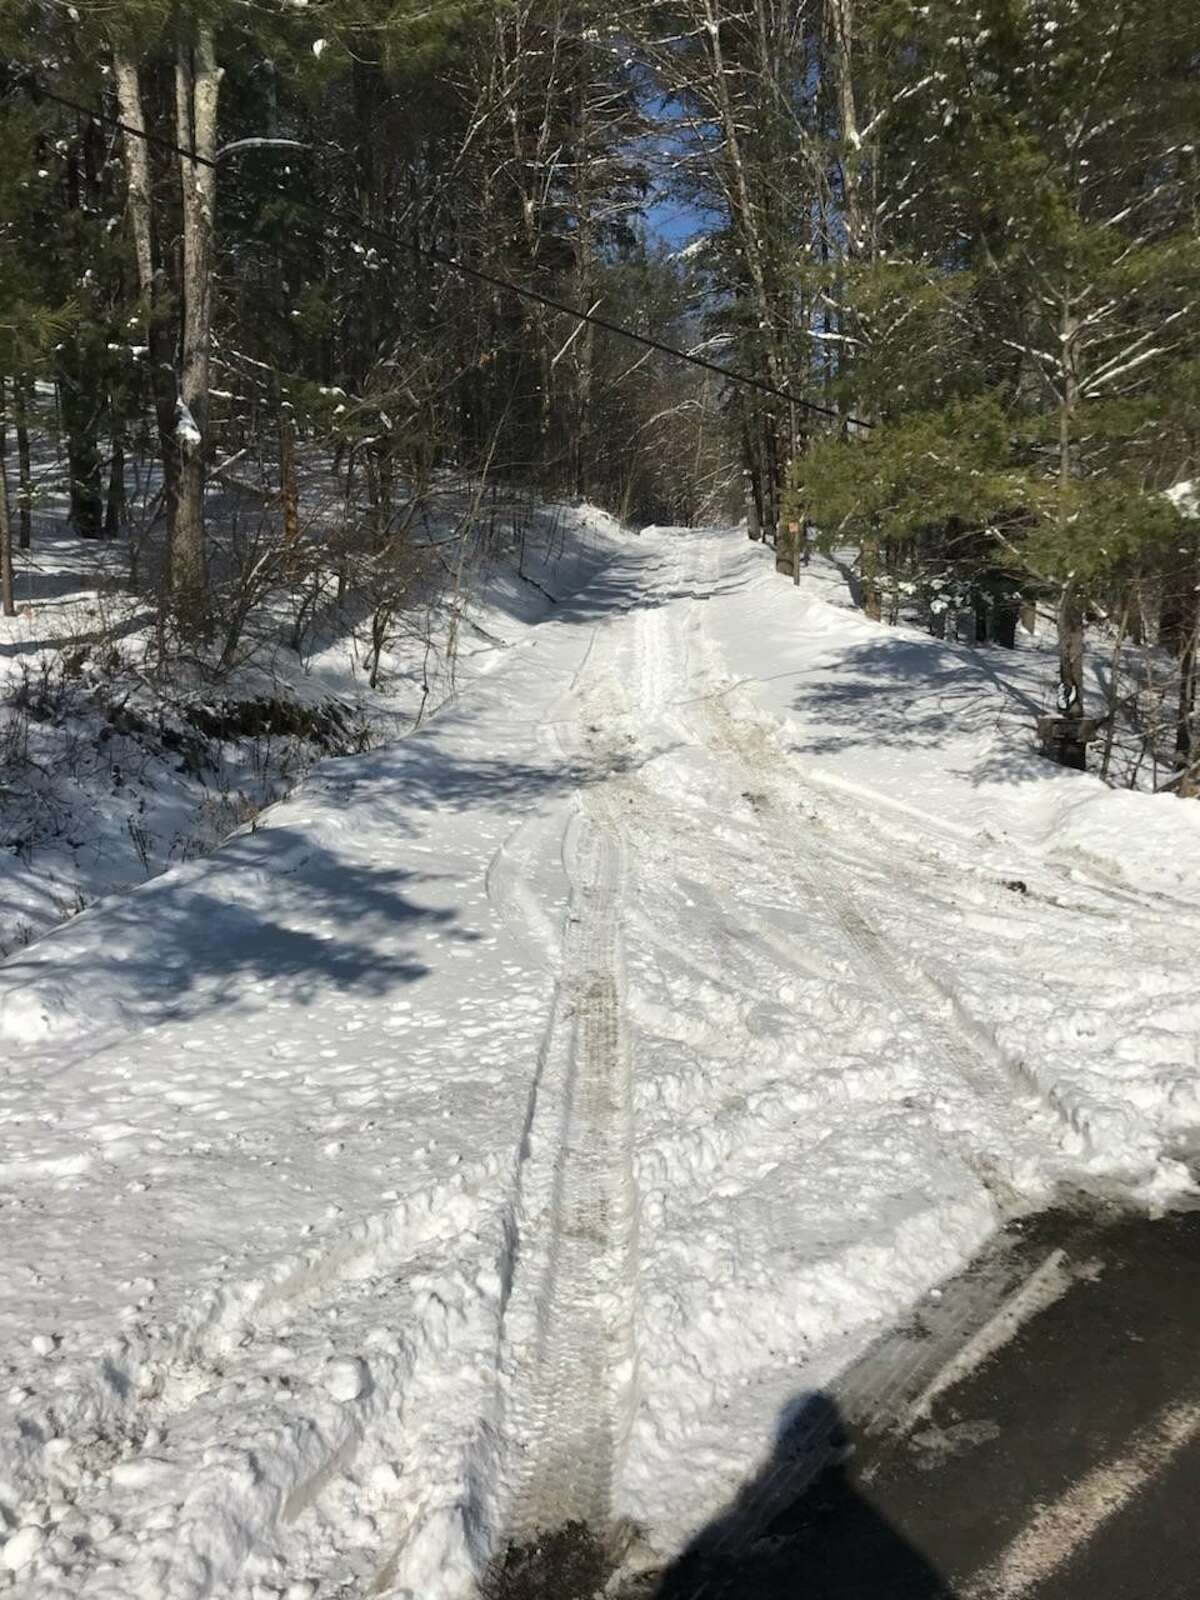 Albany County sheriff's department responds to an emergency in New Scotland where a man fell and injured his head. (Albany County sheriff's office)